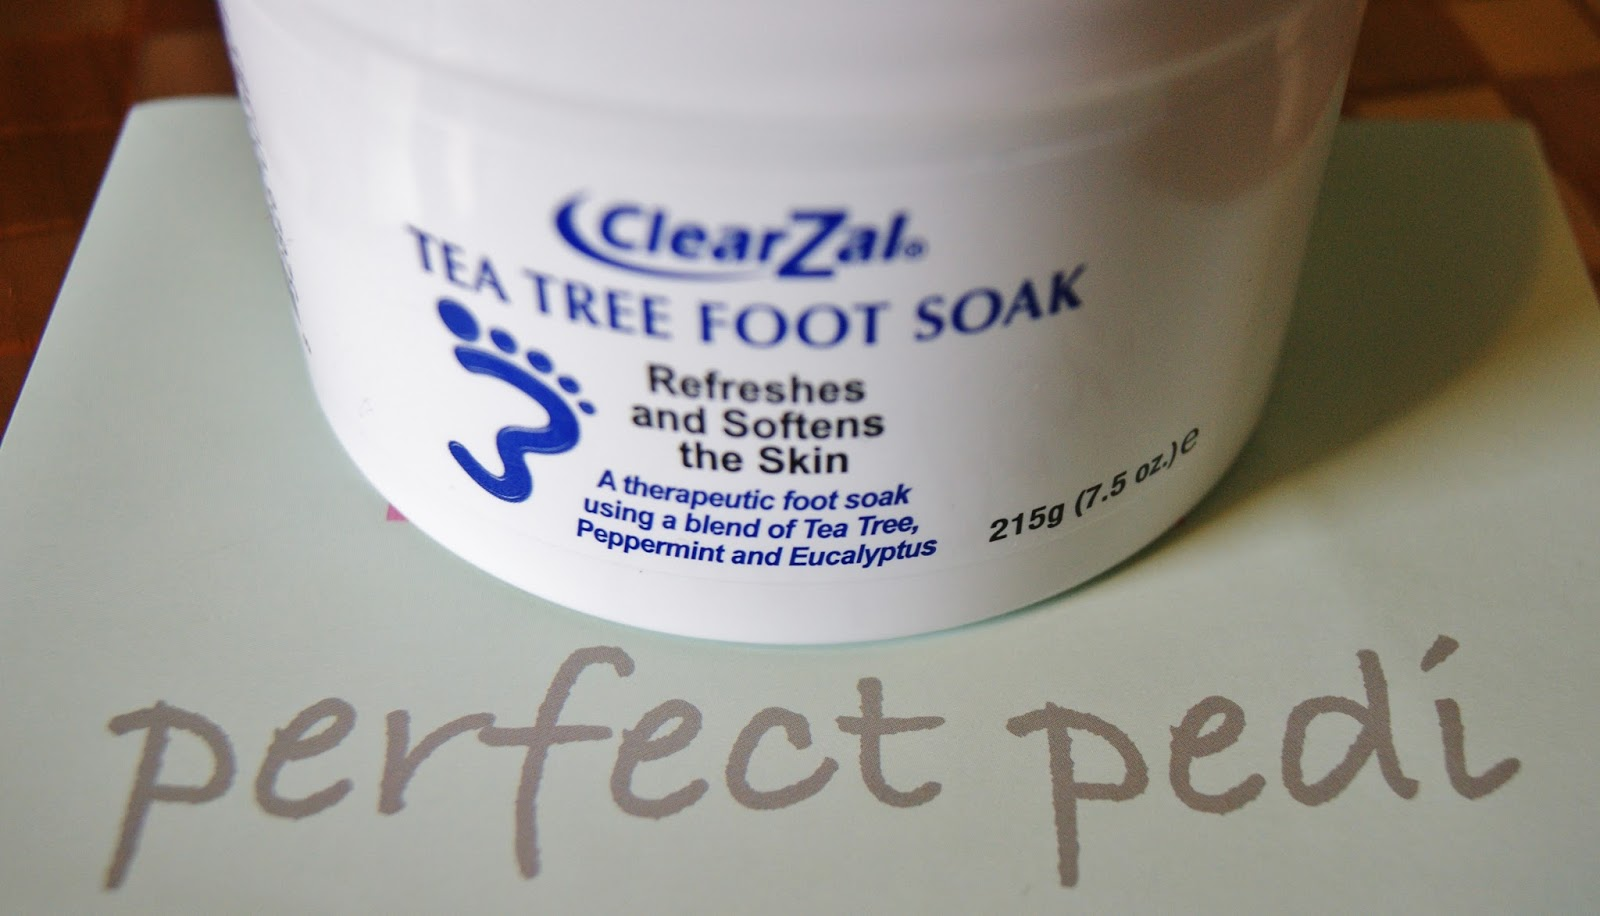 ClearZal Tea Tree Foot Soak